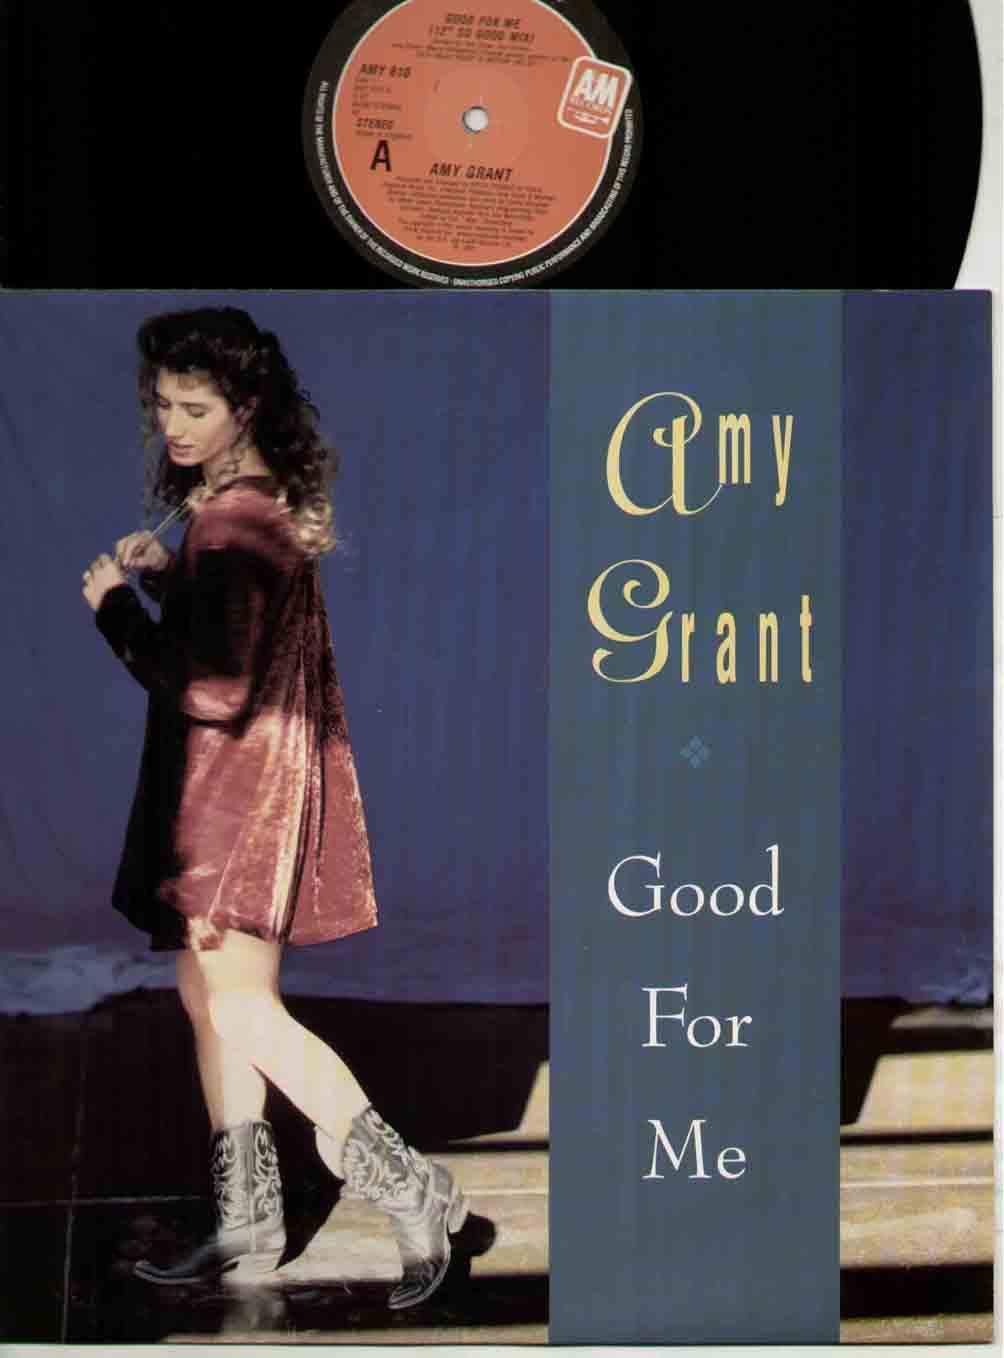 Amy Grant - Good For Me lyrics - lyriczz.com